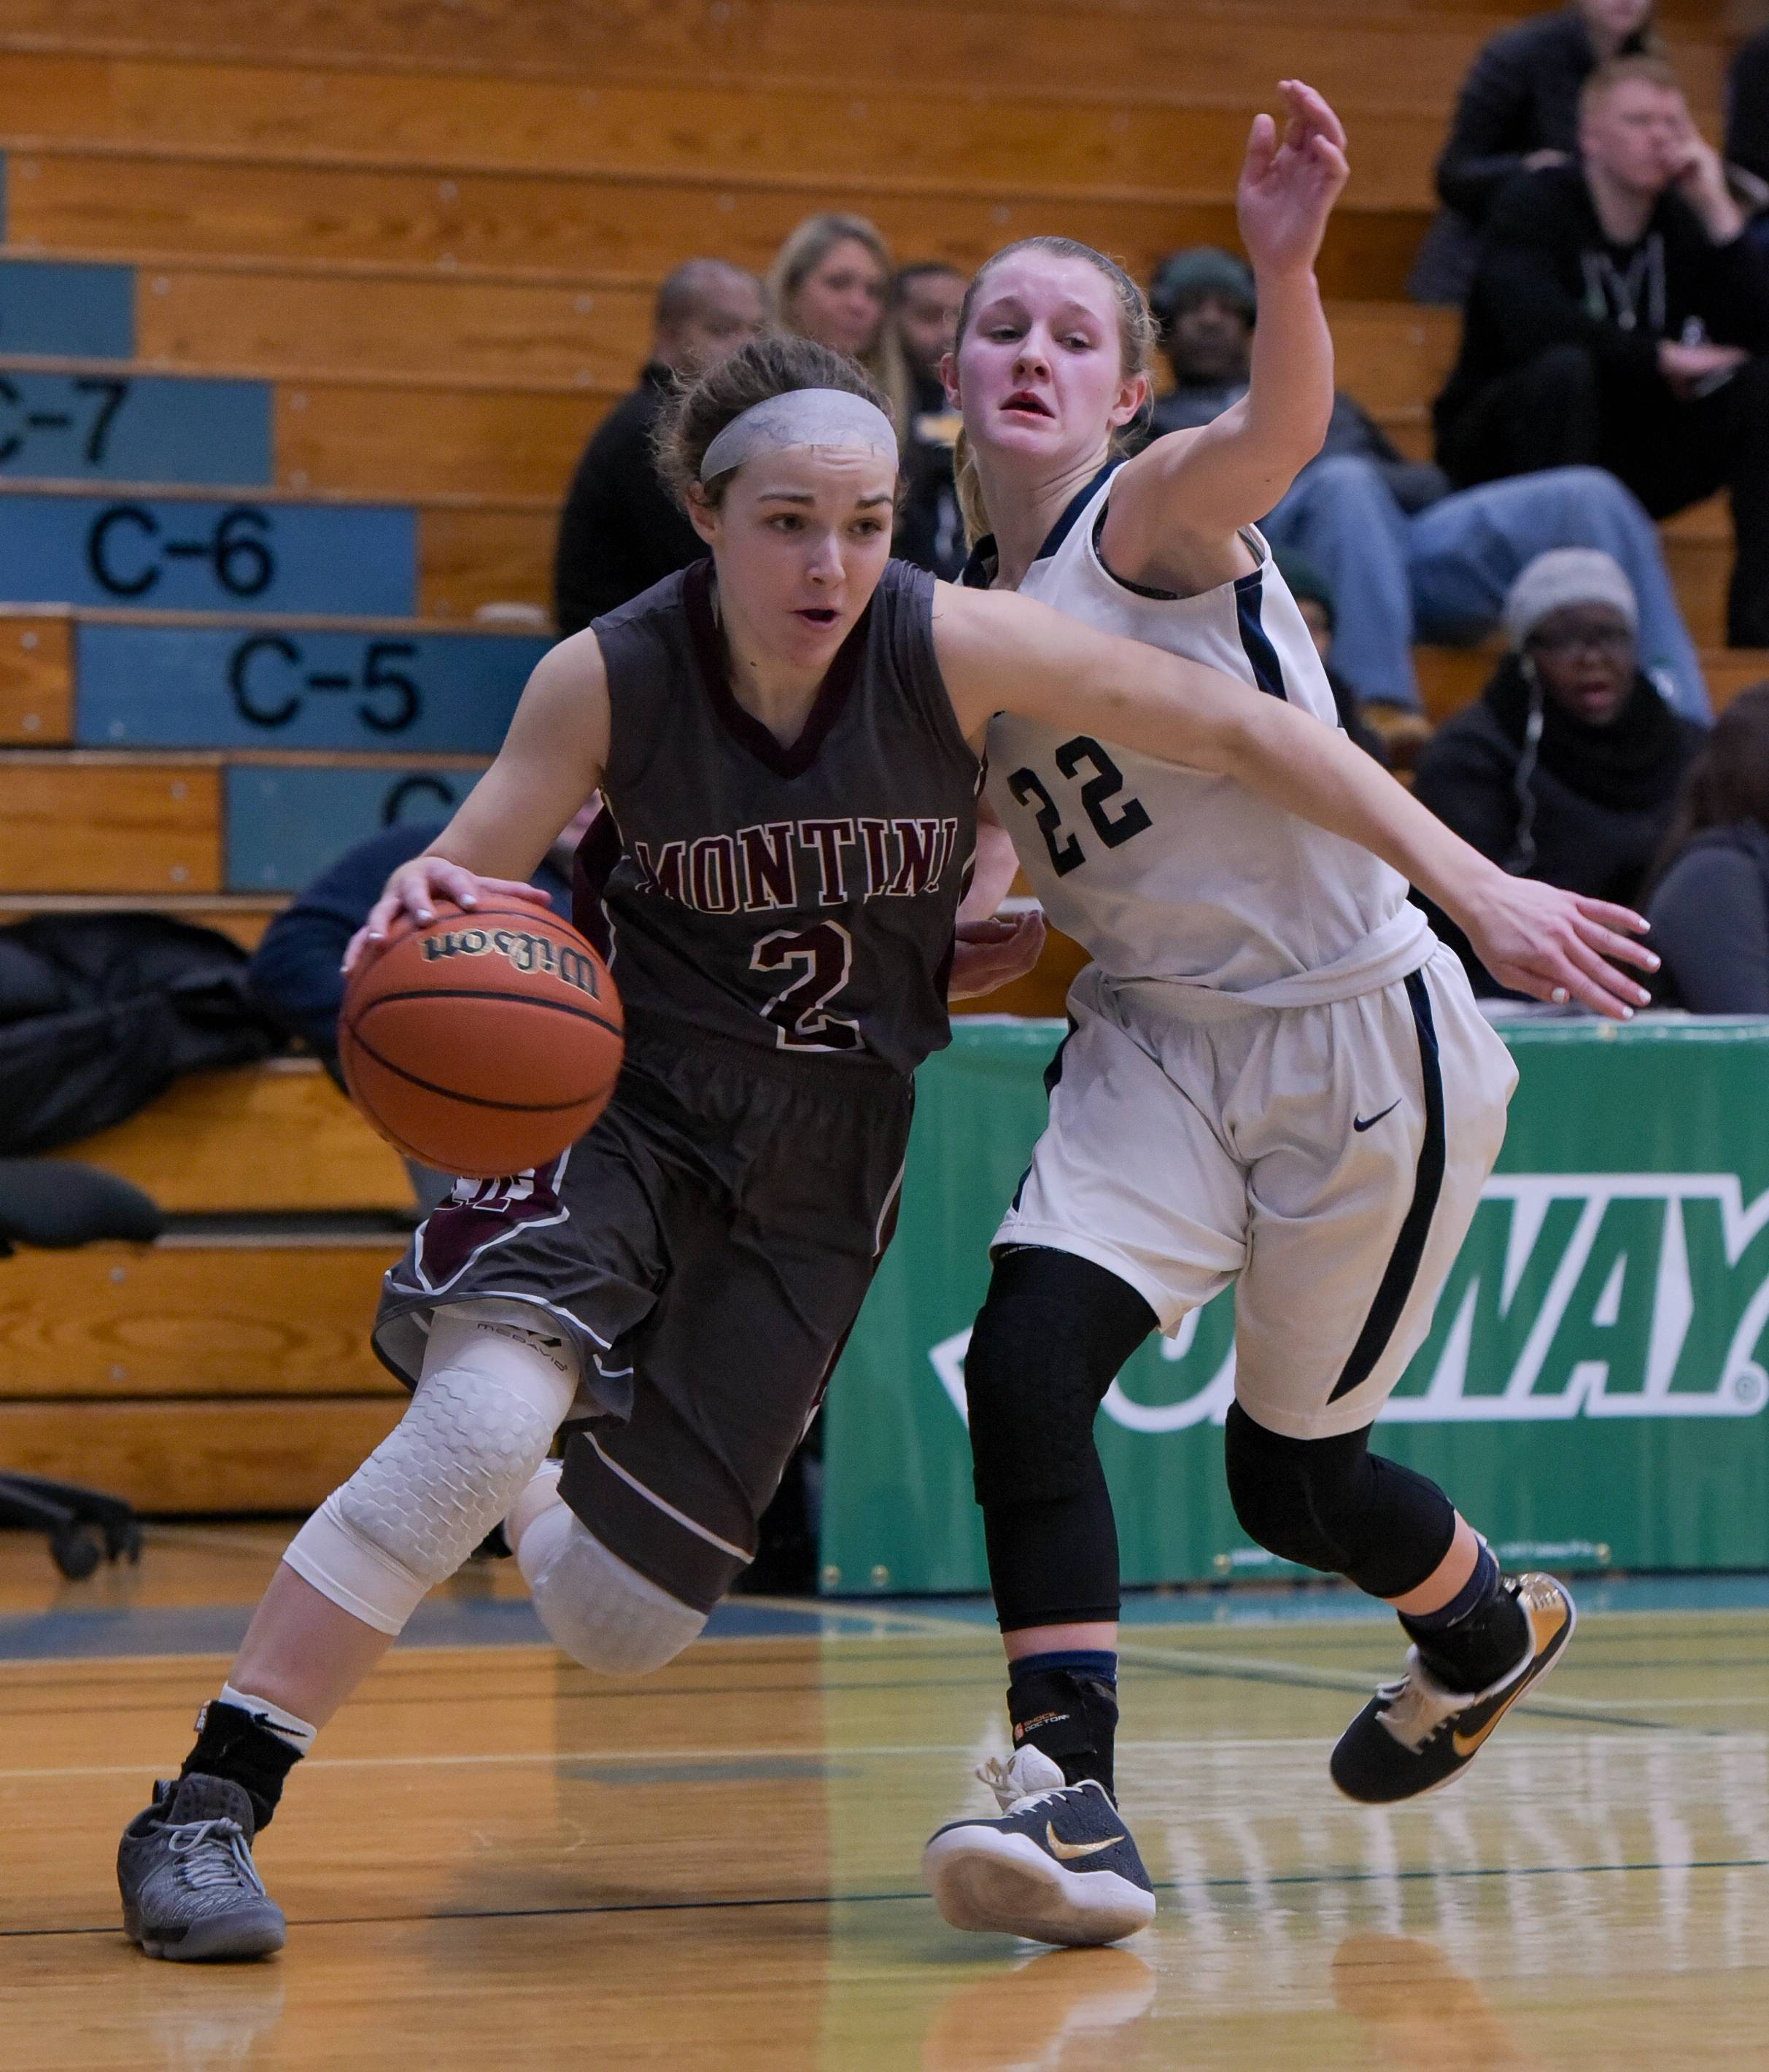 Montini's Sma Mitchell drives around Marquette Catholic's Morgan Crook during the Subway Classic girls basketball game on January 16, 2017.